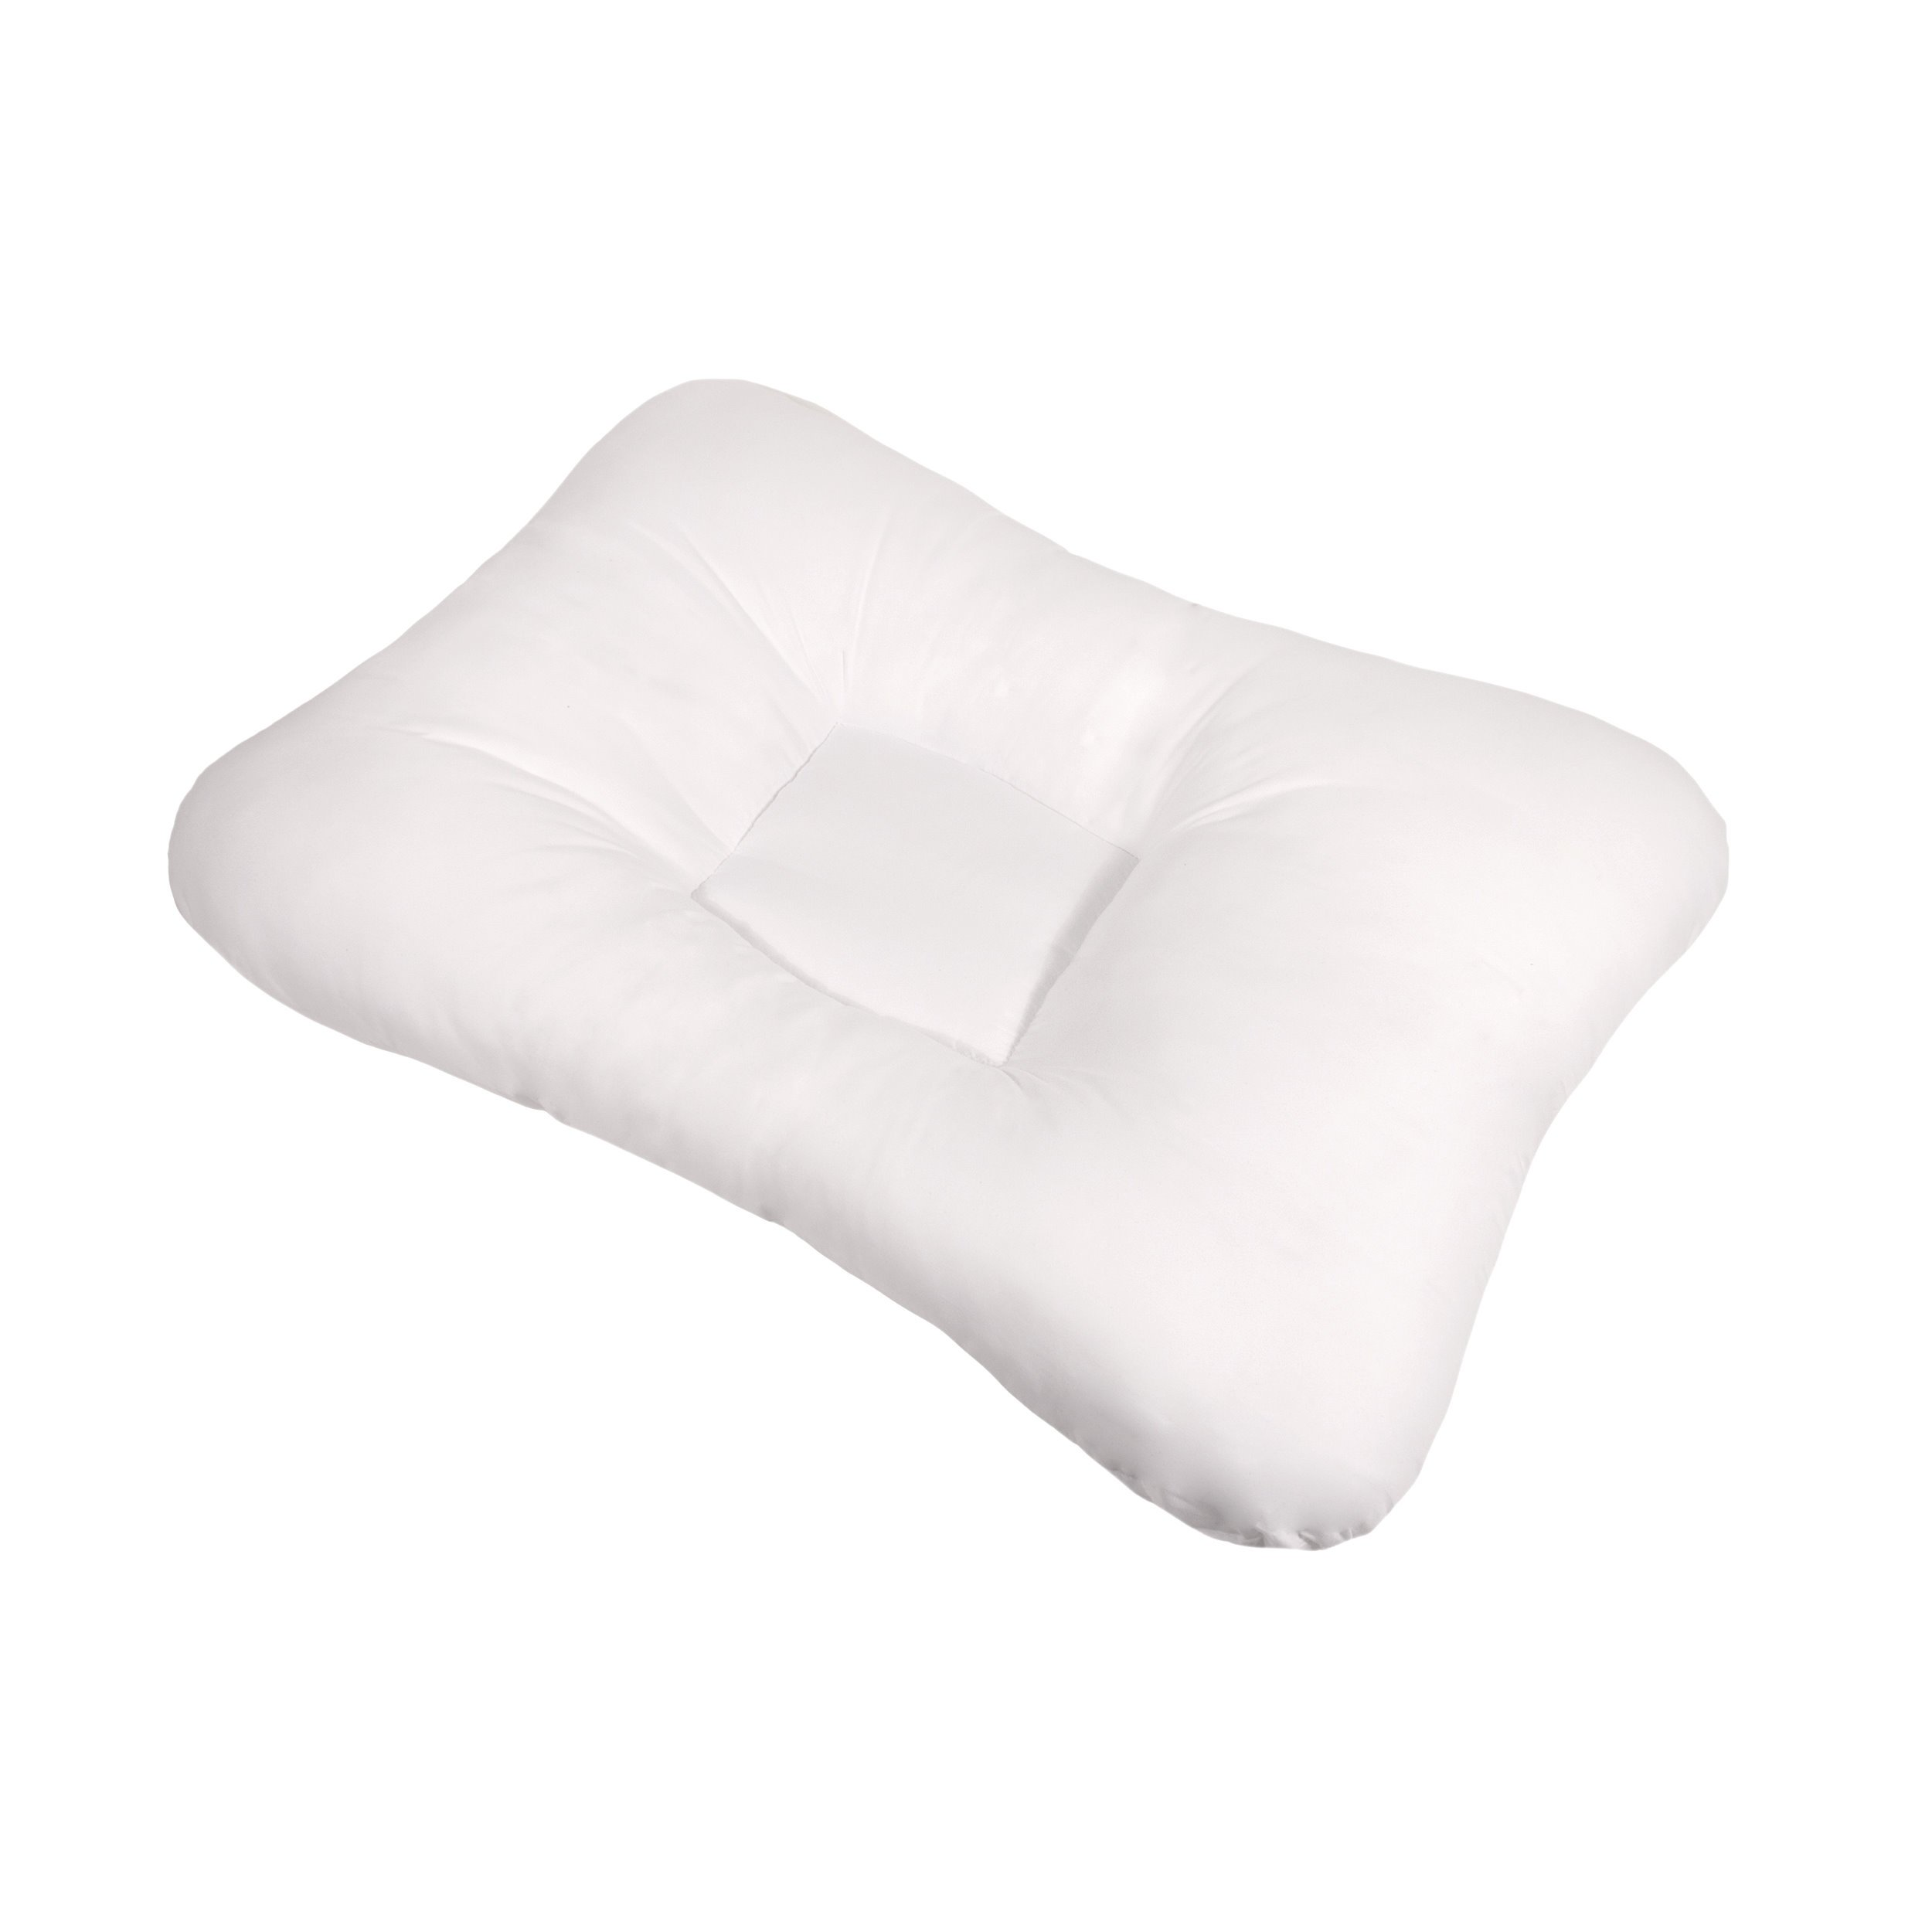 Bed - Pillow Best Decorative Sleeping Pillow For Comfortable Healthy Nap On Living Room Couch, Sofa, Bedroom Mattress At Home. Science of Sleep Pillow. White. Cute, Soft, Cozy Bedding.